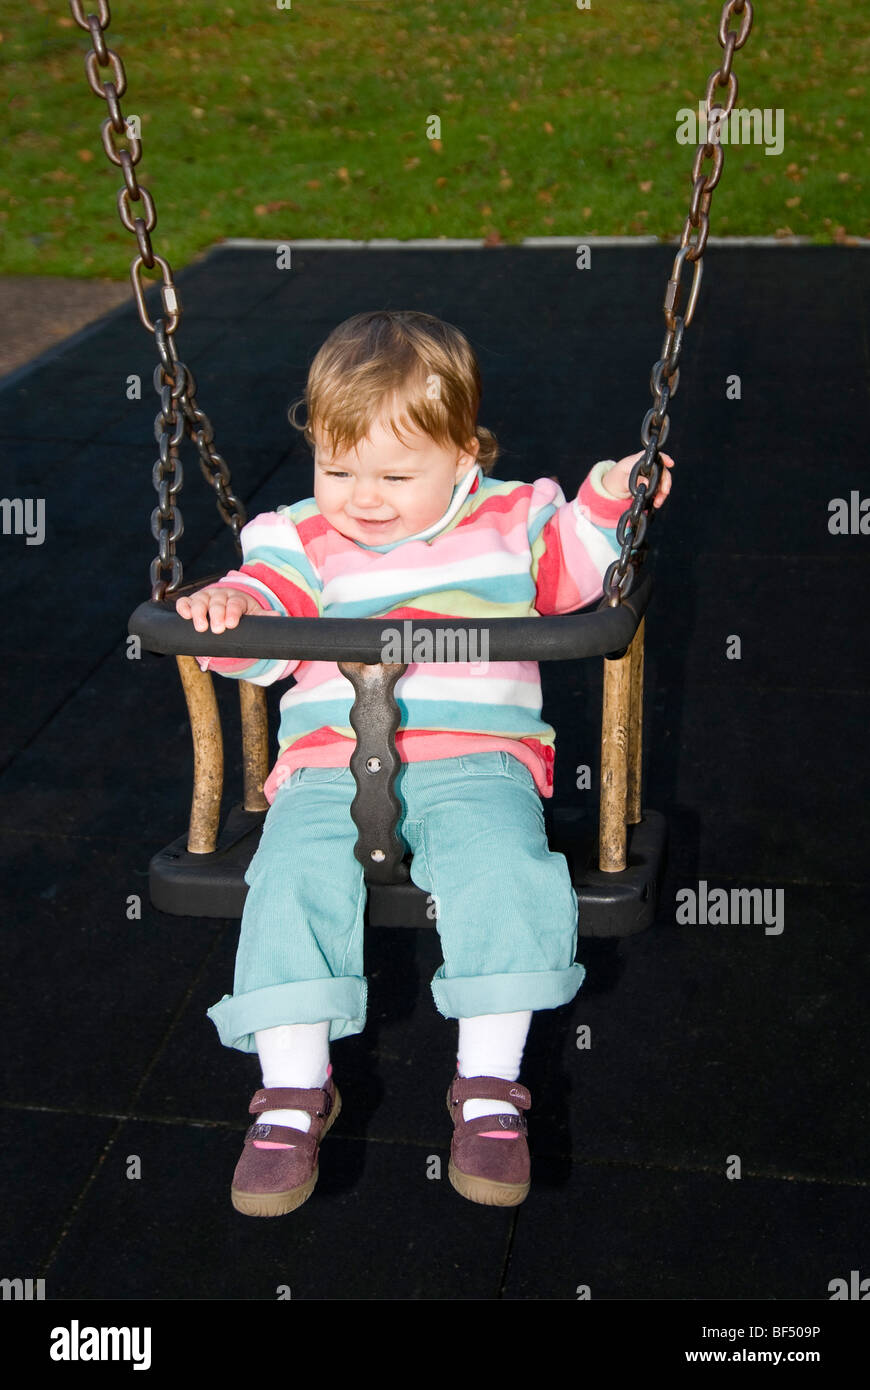 Vertical close up portrait of a little girl smiling and having great fun sitting on a swing at the park. Stock Photo